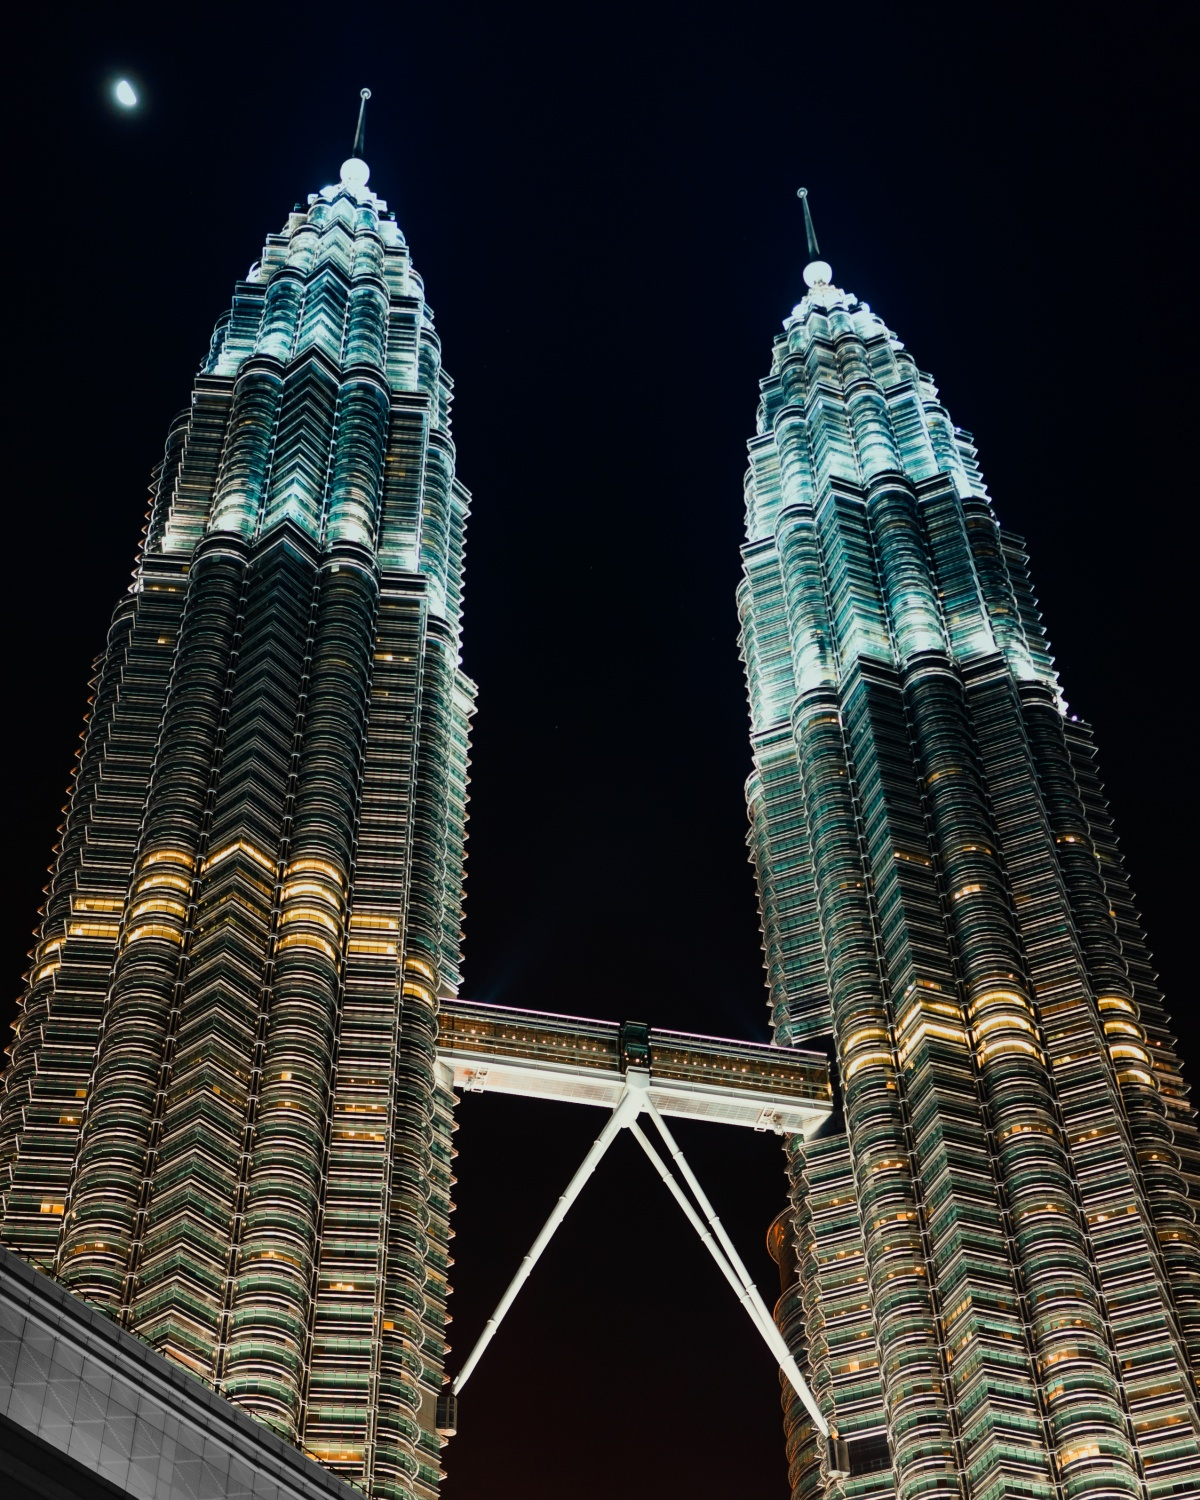 Night view photo of Petronas Twin towers in Kuala Lumpur